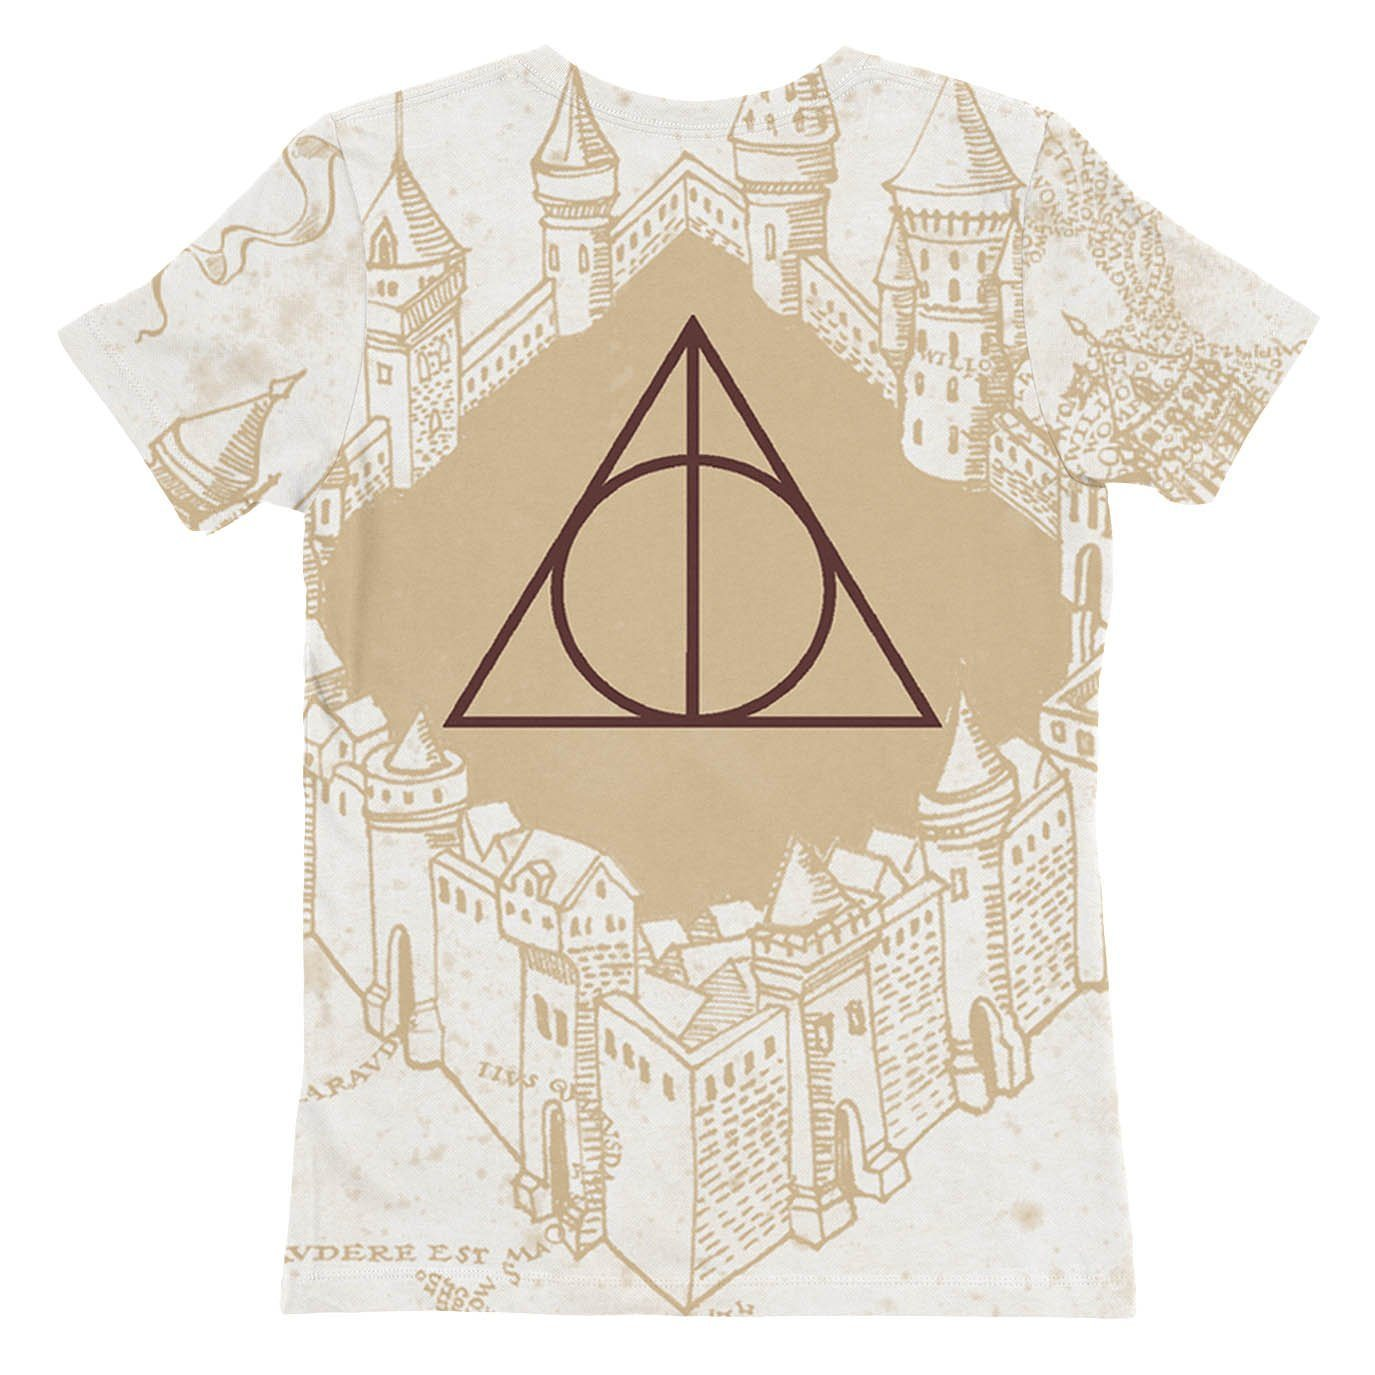 Marauders Map Womens T-shirt